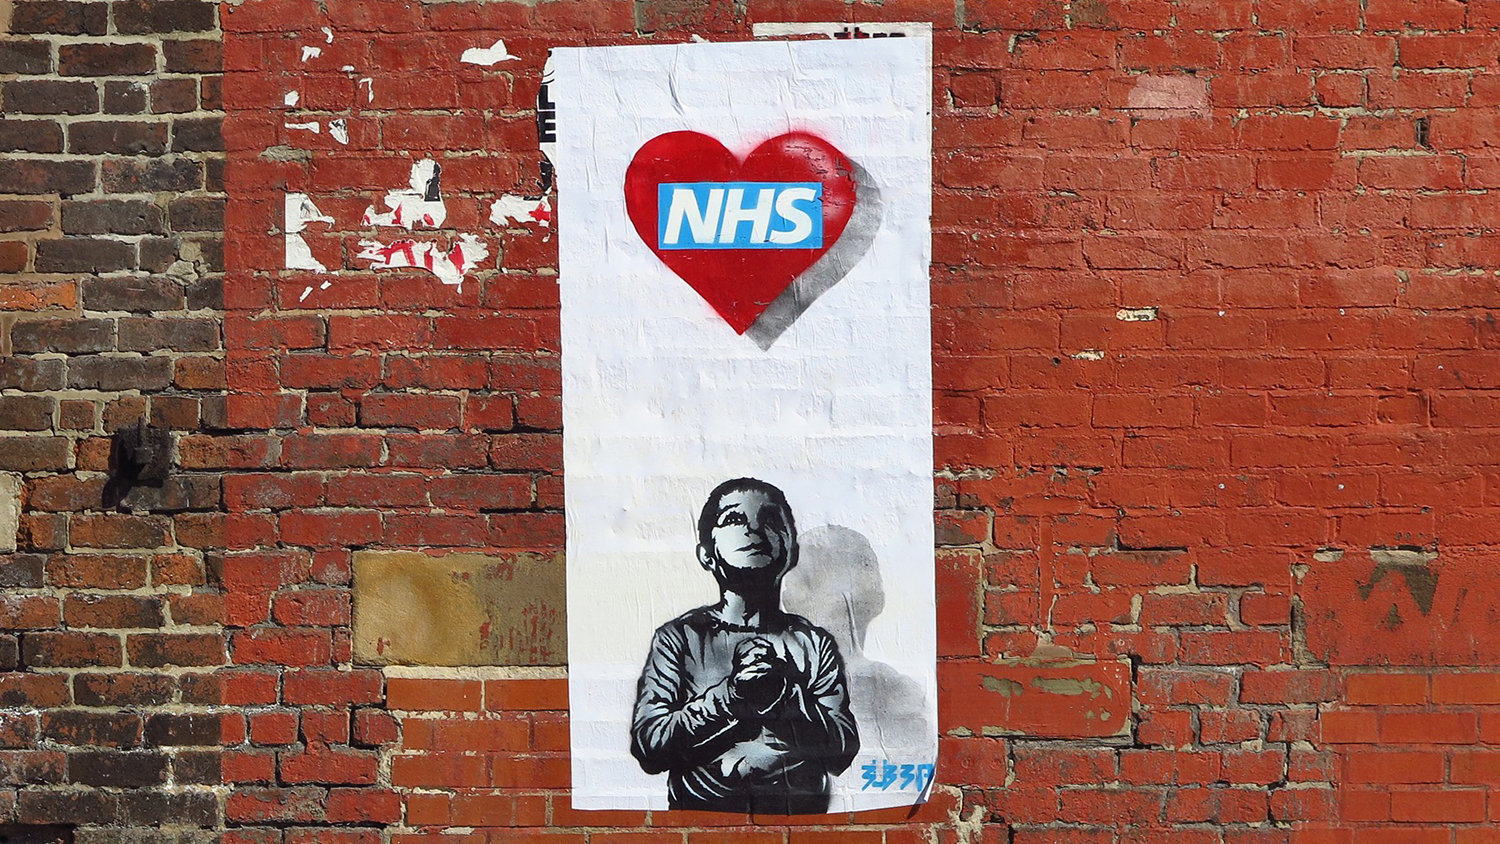 NHS heart poster on a wall